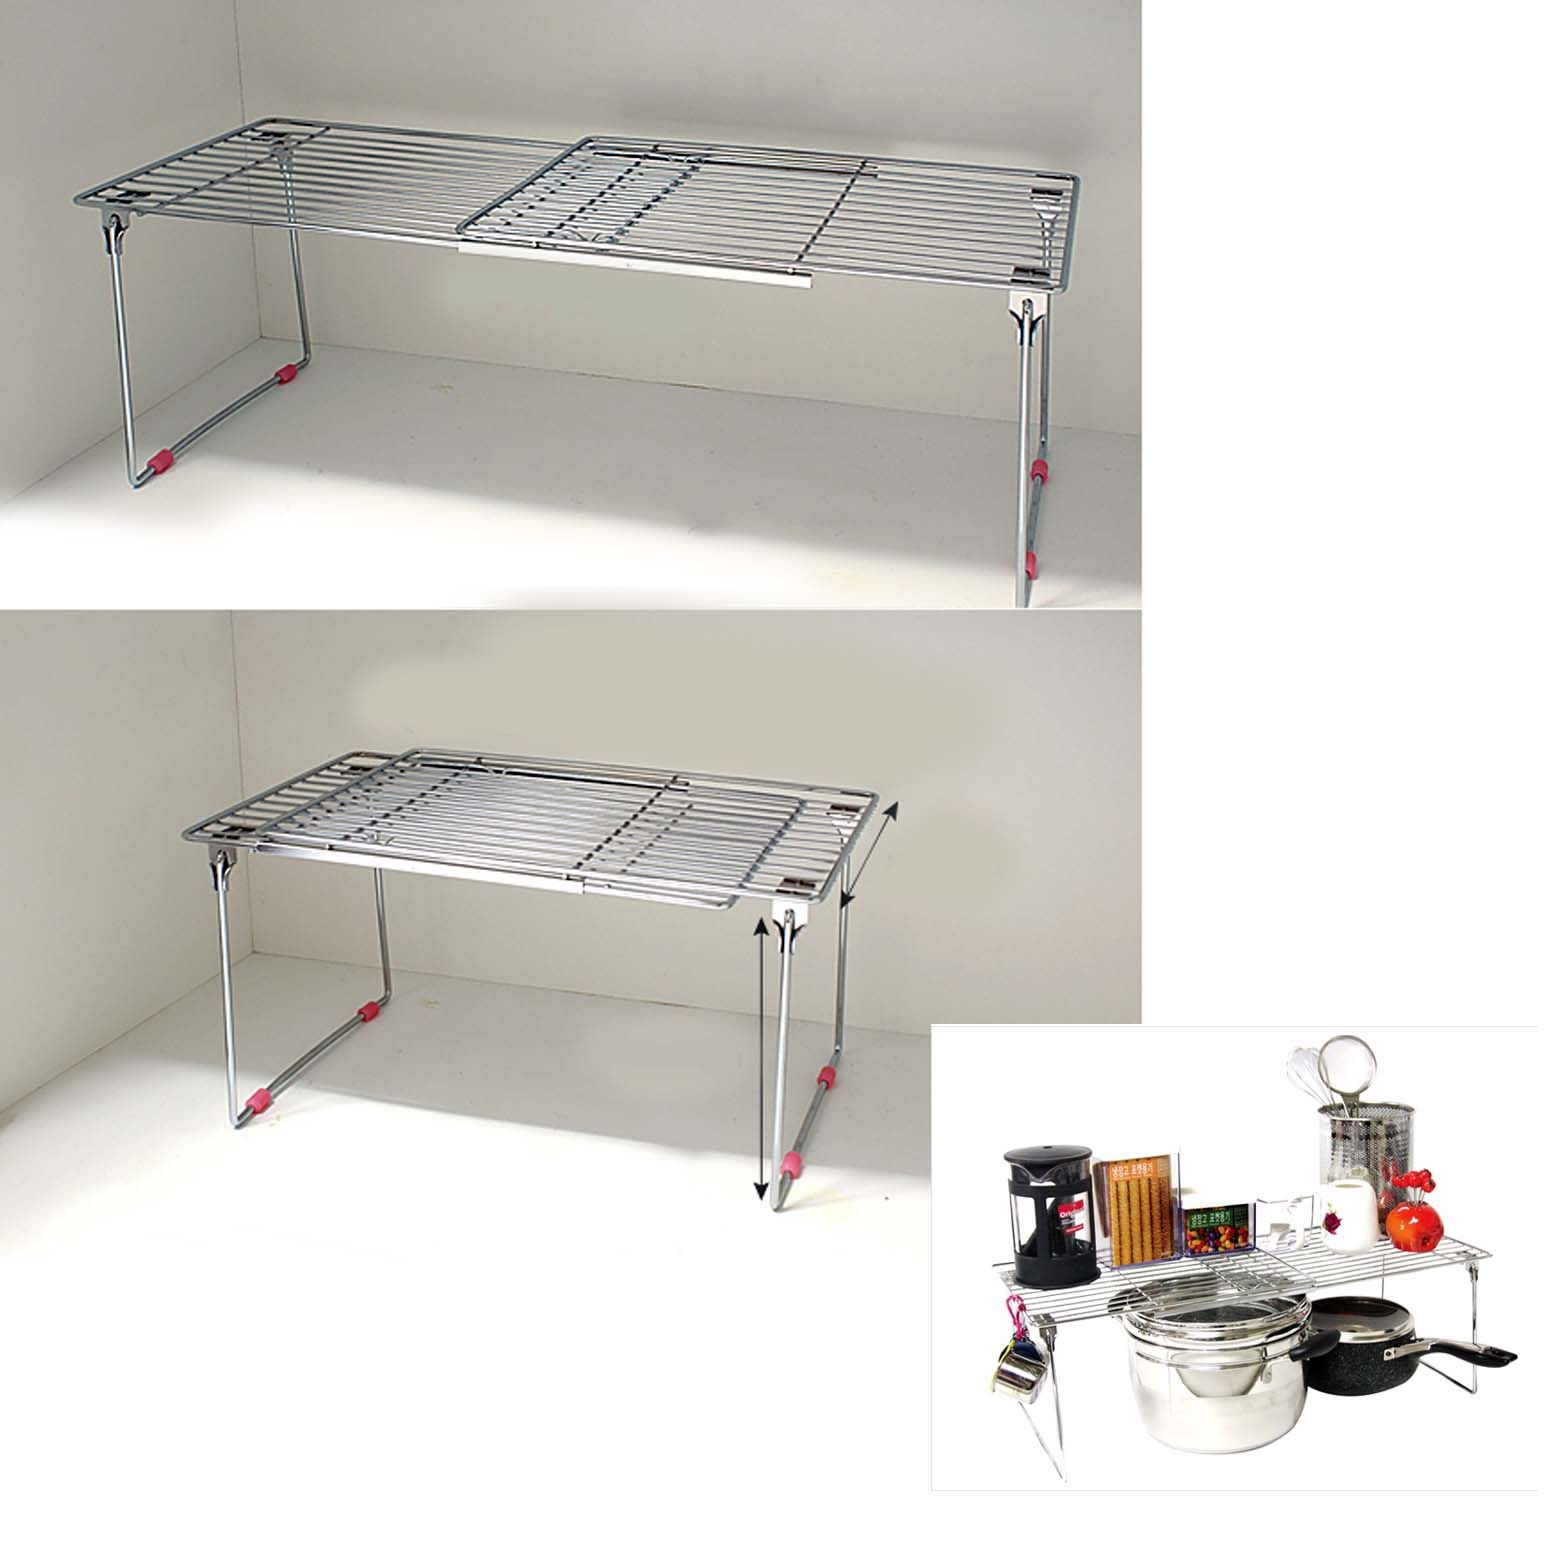 new stainless extendable under sink organizer storage shelf sliding kitchen rack ebay. Black Bedroom Furniture Sets. Home Design Ideas